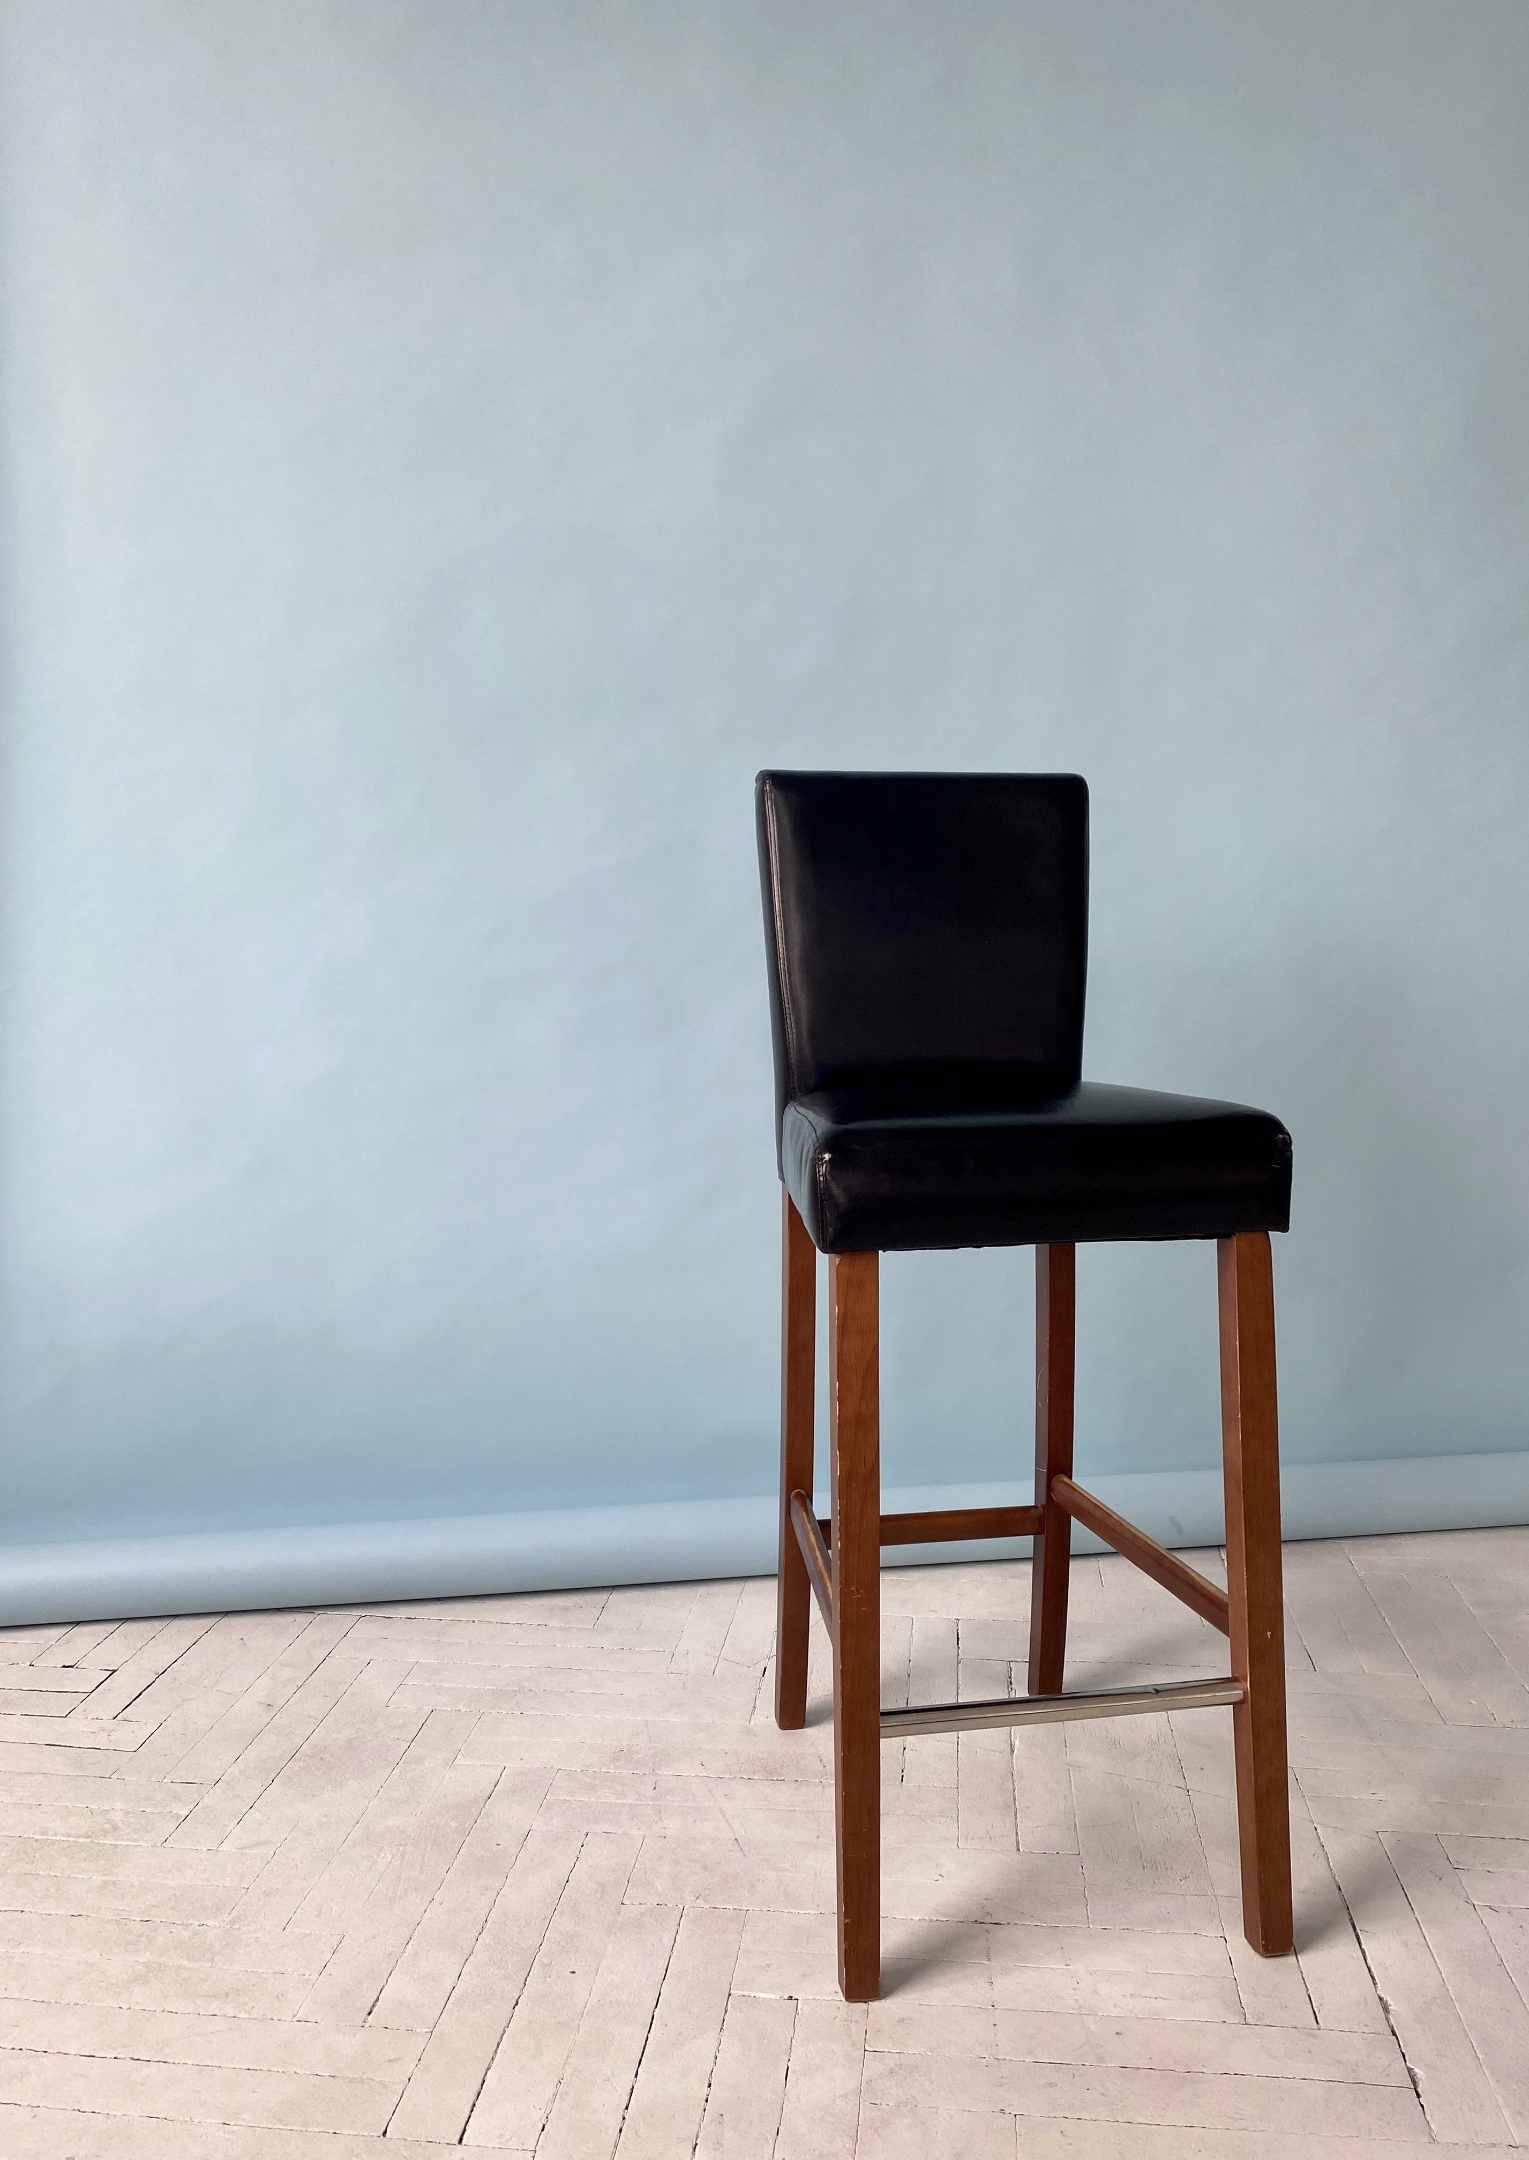 A tall black leather chair with a back and four brown legs against a light blue background.